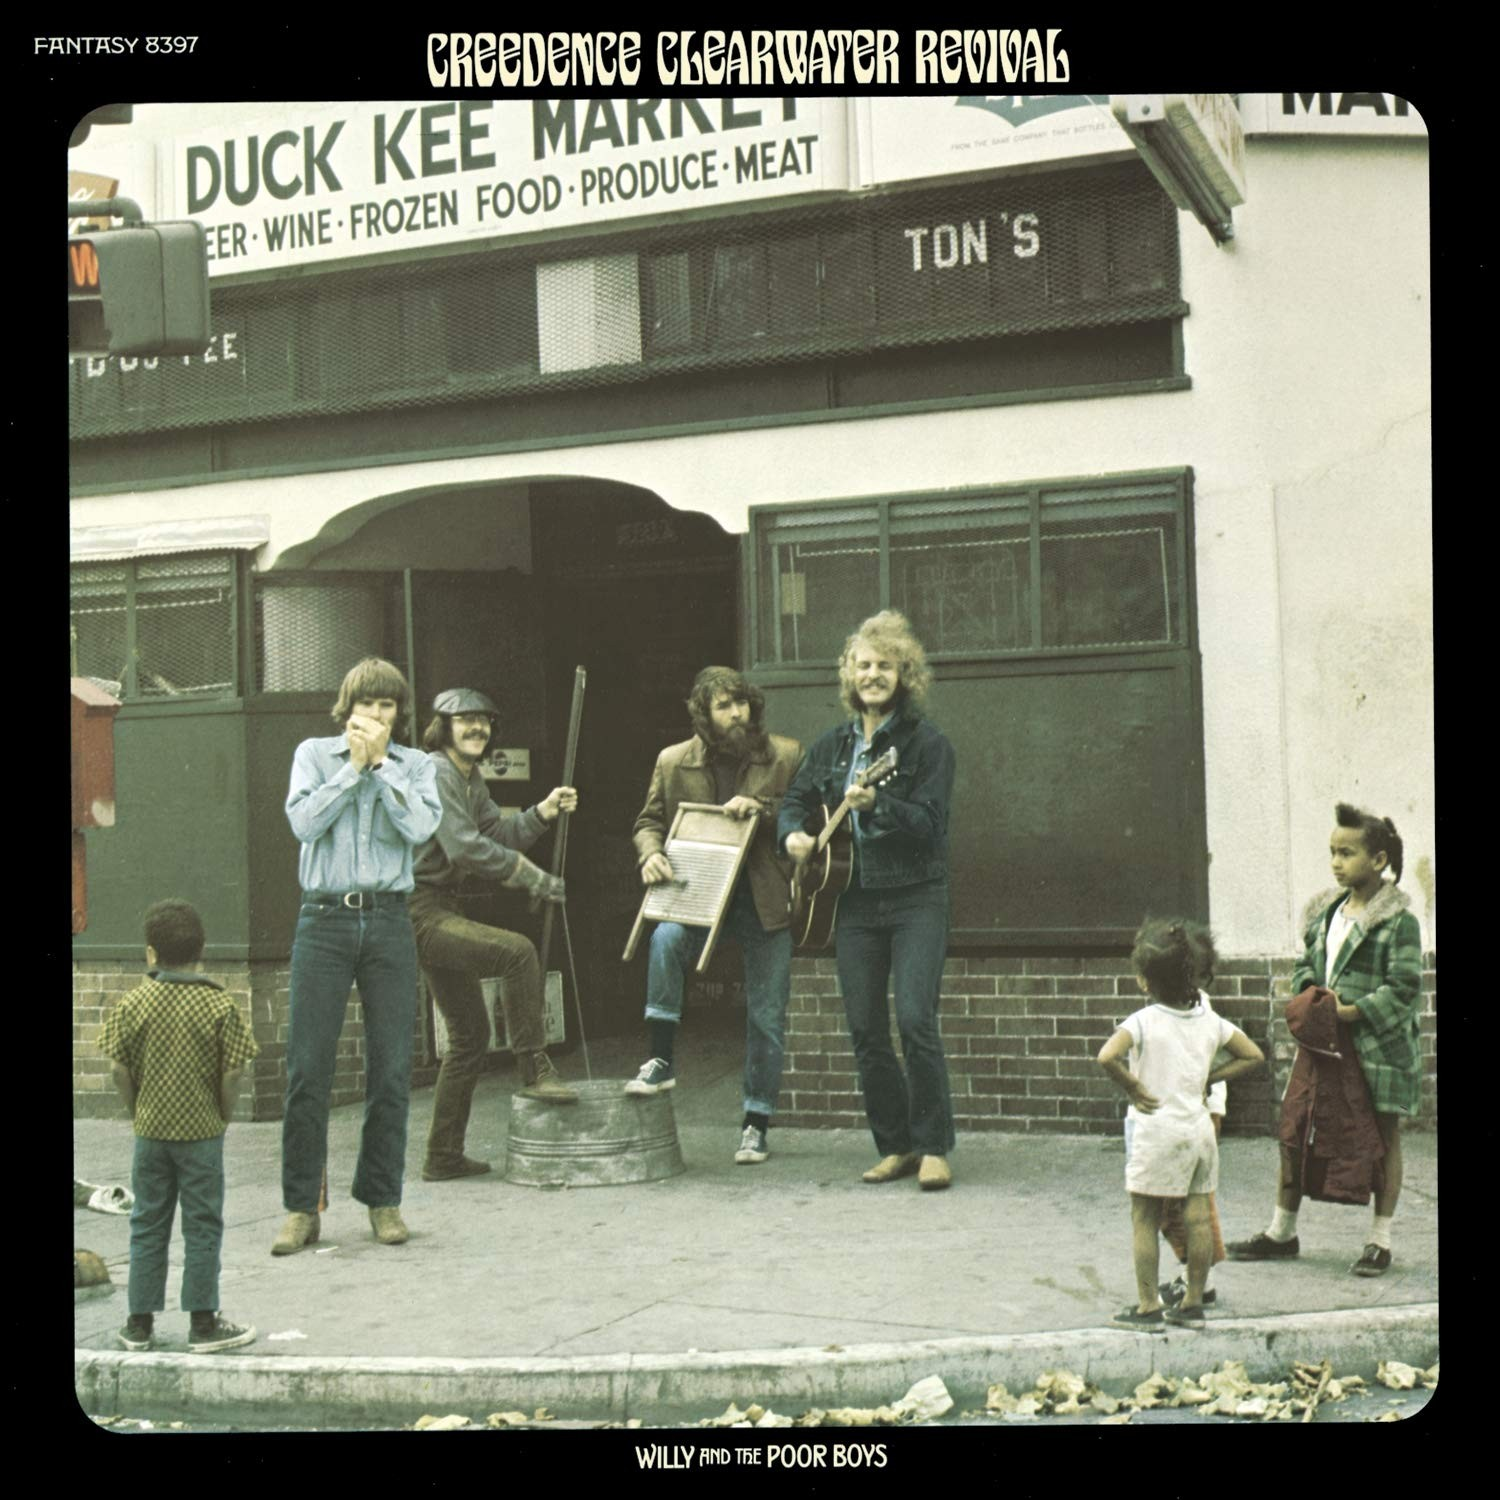 Creedence Clearwater Revival - Willy & Poor Boys (1/2 Speed Master) LP